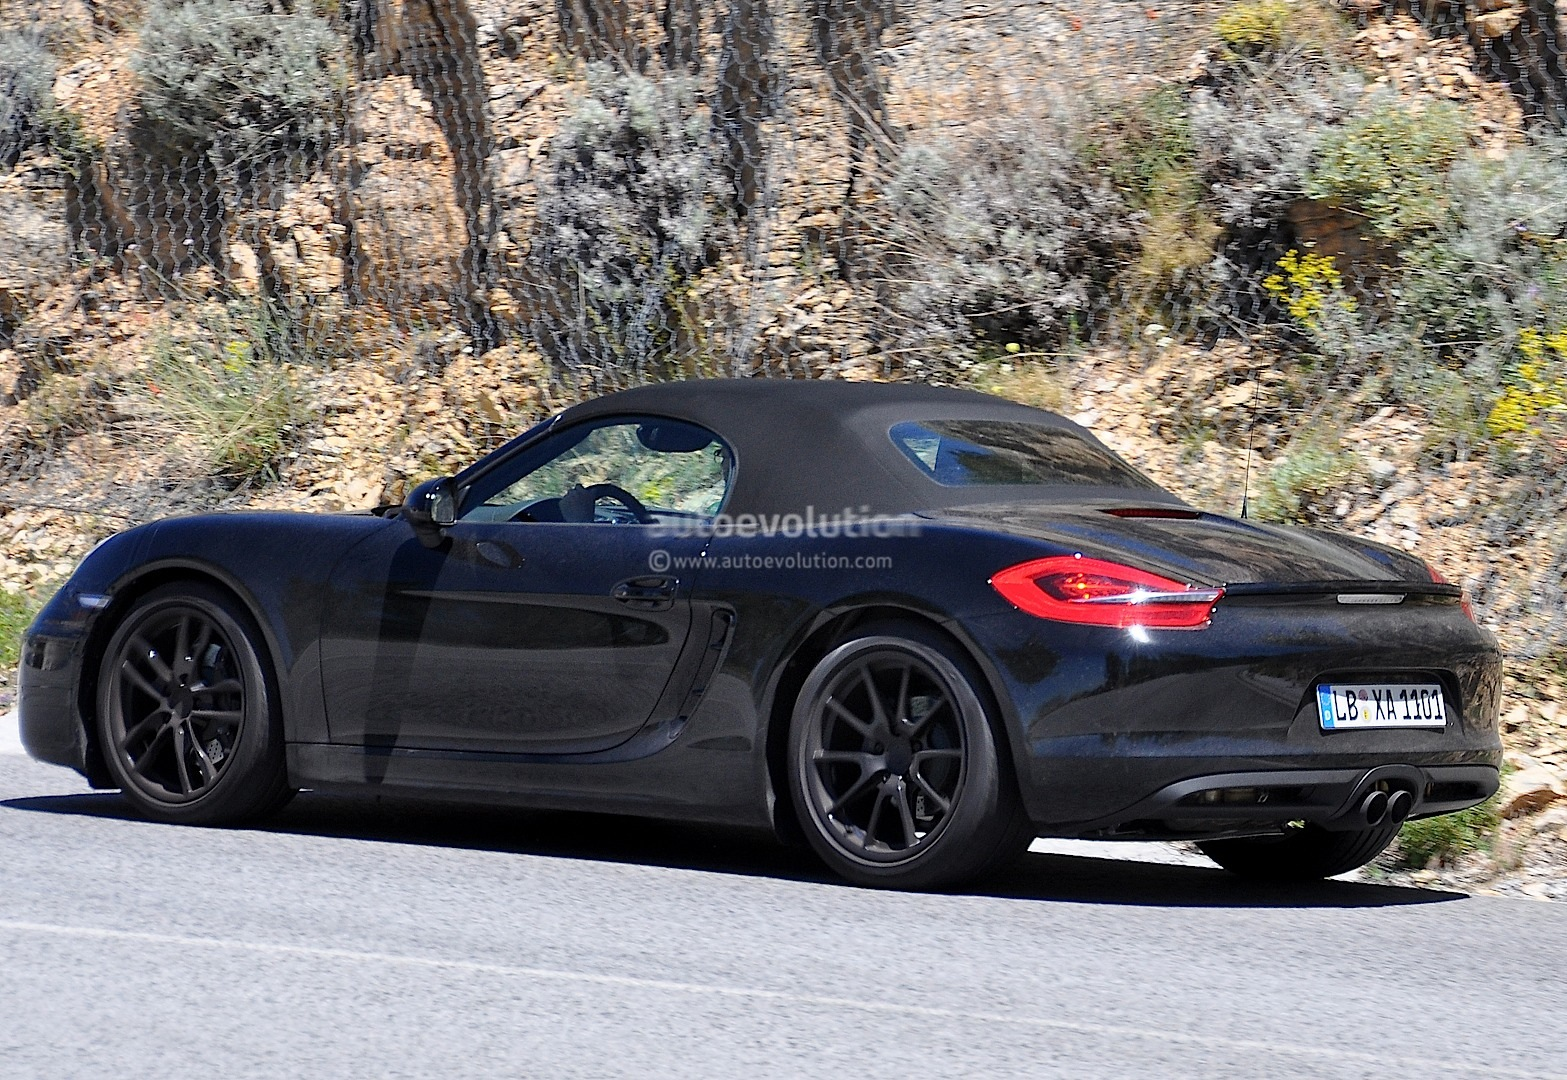 2016 - [Porsche] 718 Boxster & 718 Cayman [982] Porsche-boxster-facelift-prototype-spied-turbo-flat-four-engines-coming_3